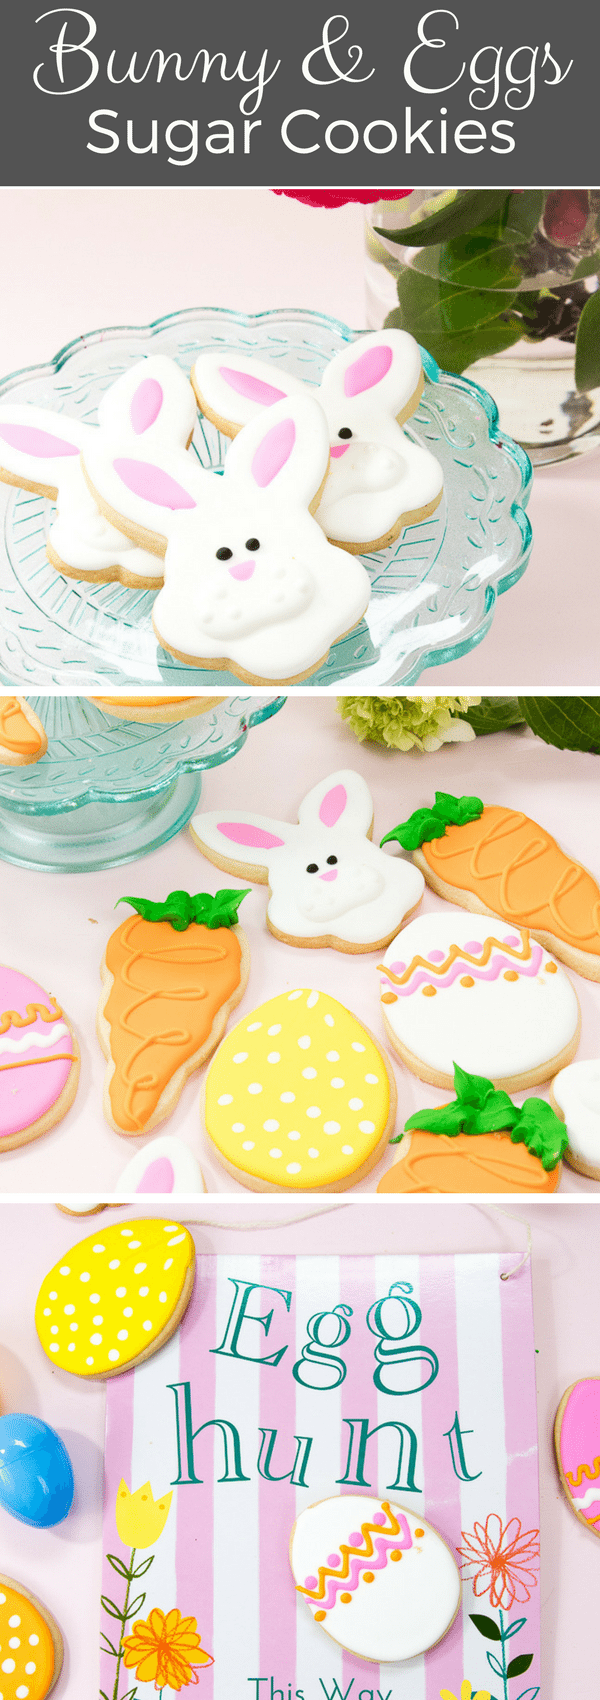 These adorable bunny decorated sugar cookies with eggs & carrots will please your Easter guests. So much fun for a spring party. #decoratedcookies #cookies #recipe #easter